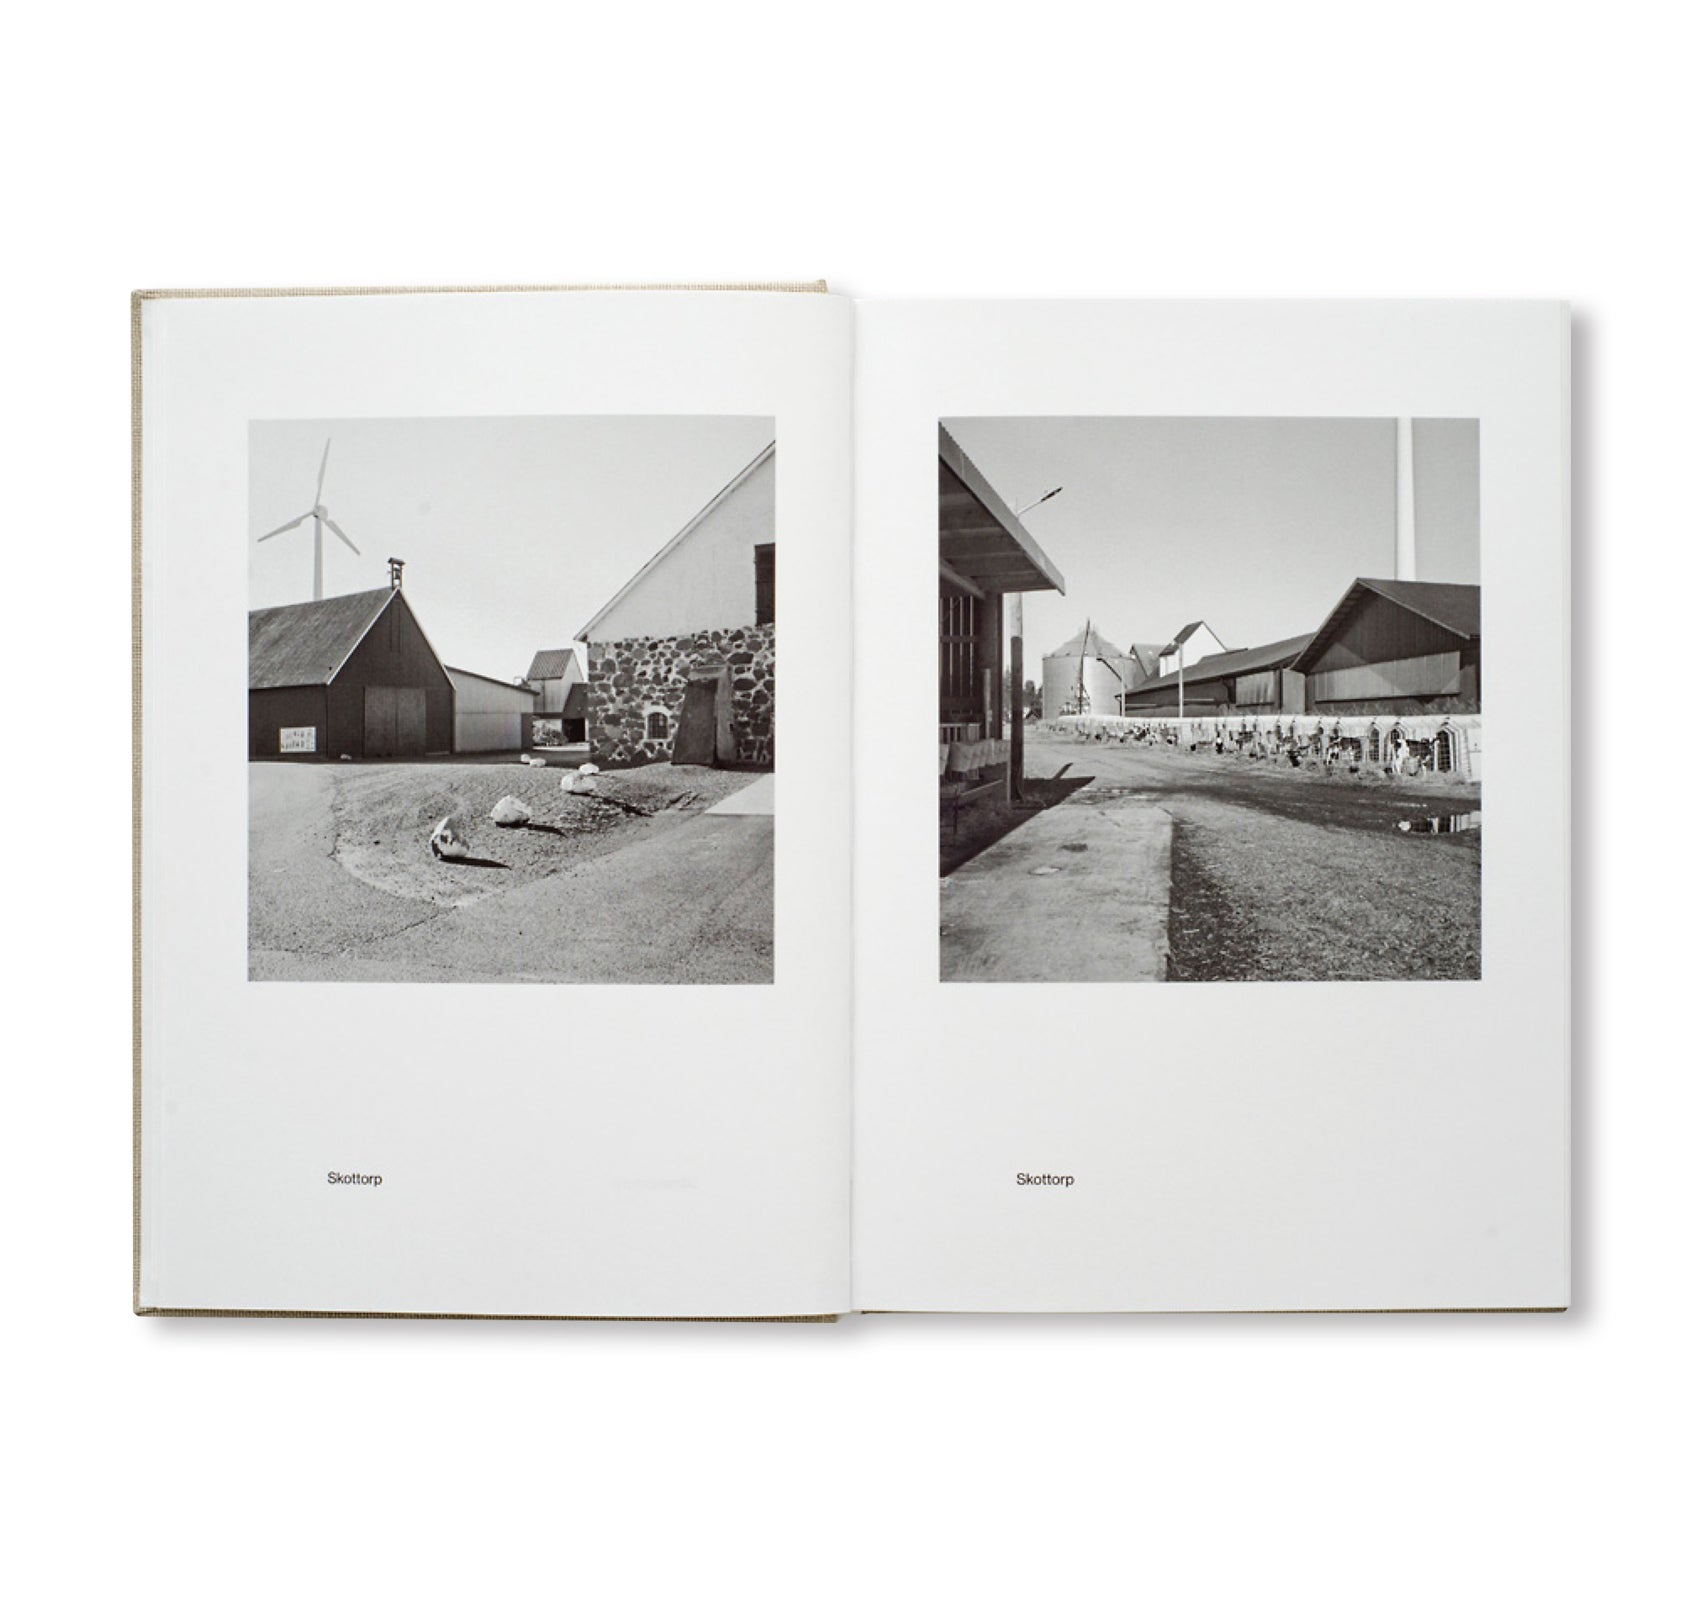 HALLAND by Gerry Johansson [SIGNED]